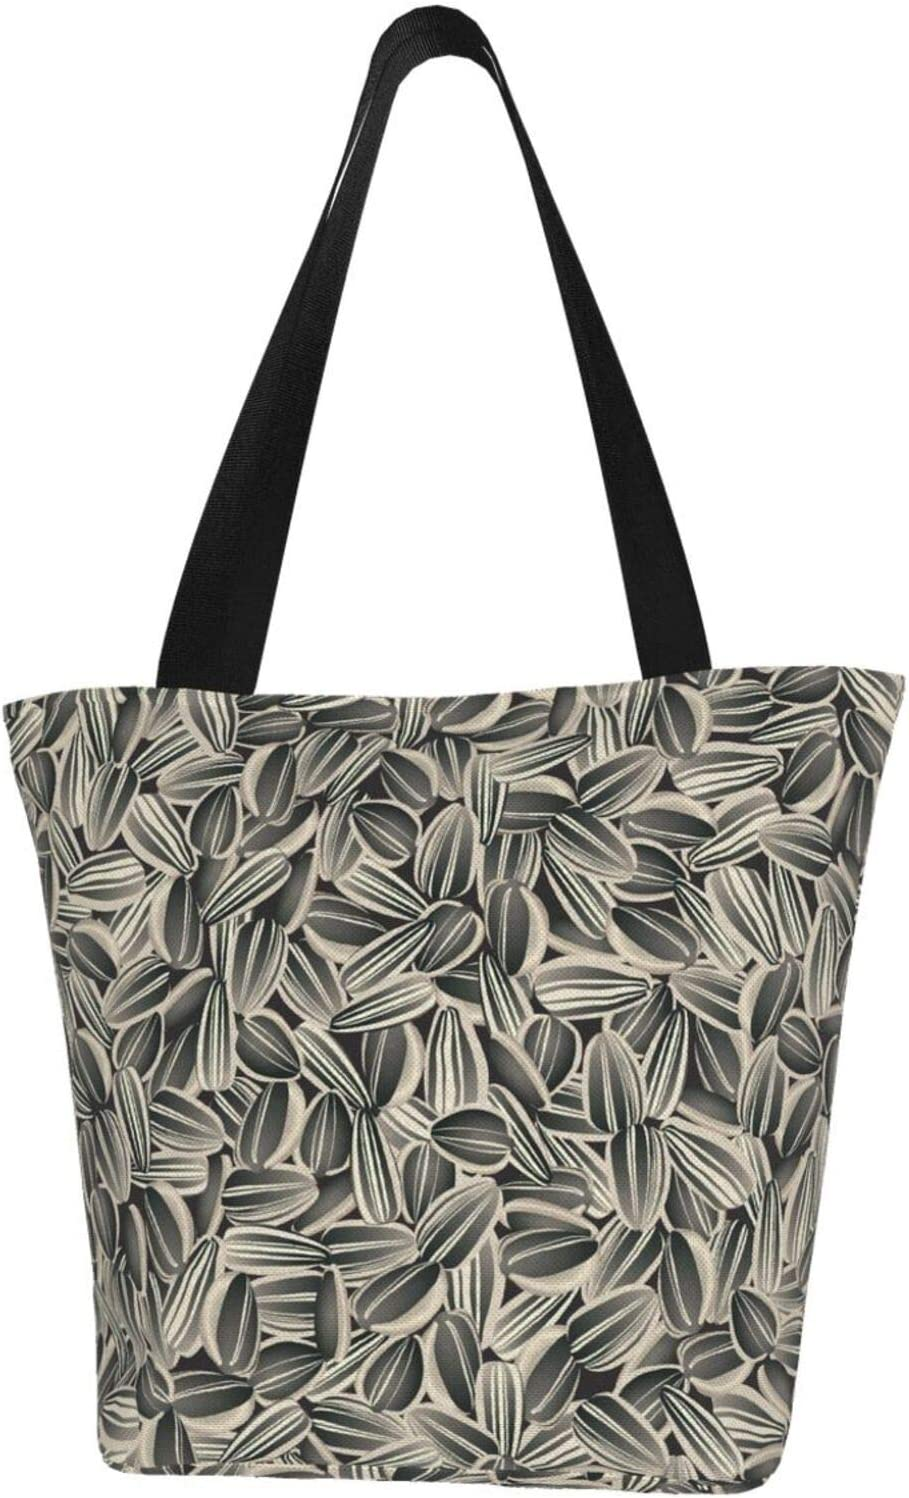 AKLID Sunflower Seeds Extra Large Canvas Resistant Max 44% OFF Ba Fashion Water Tote